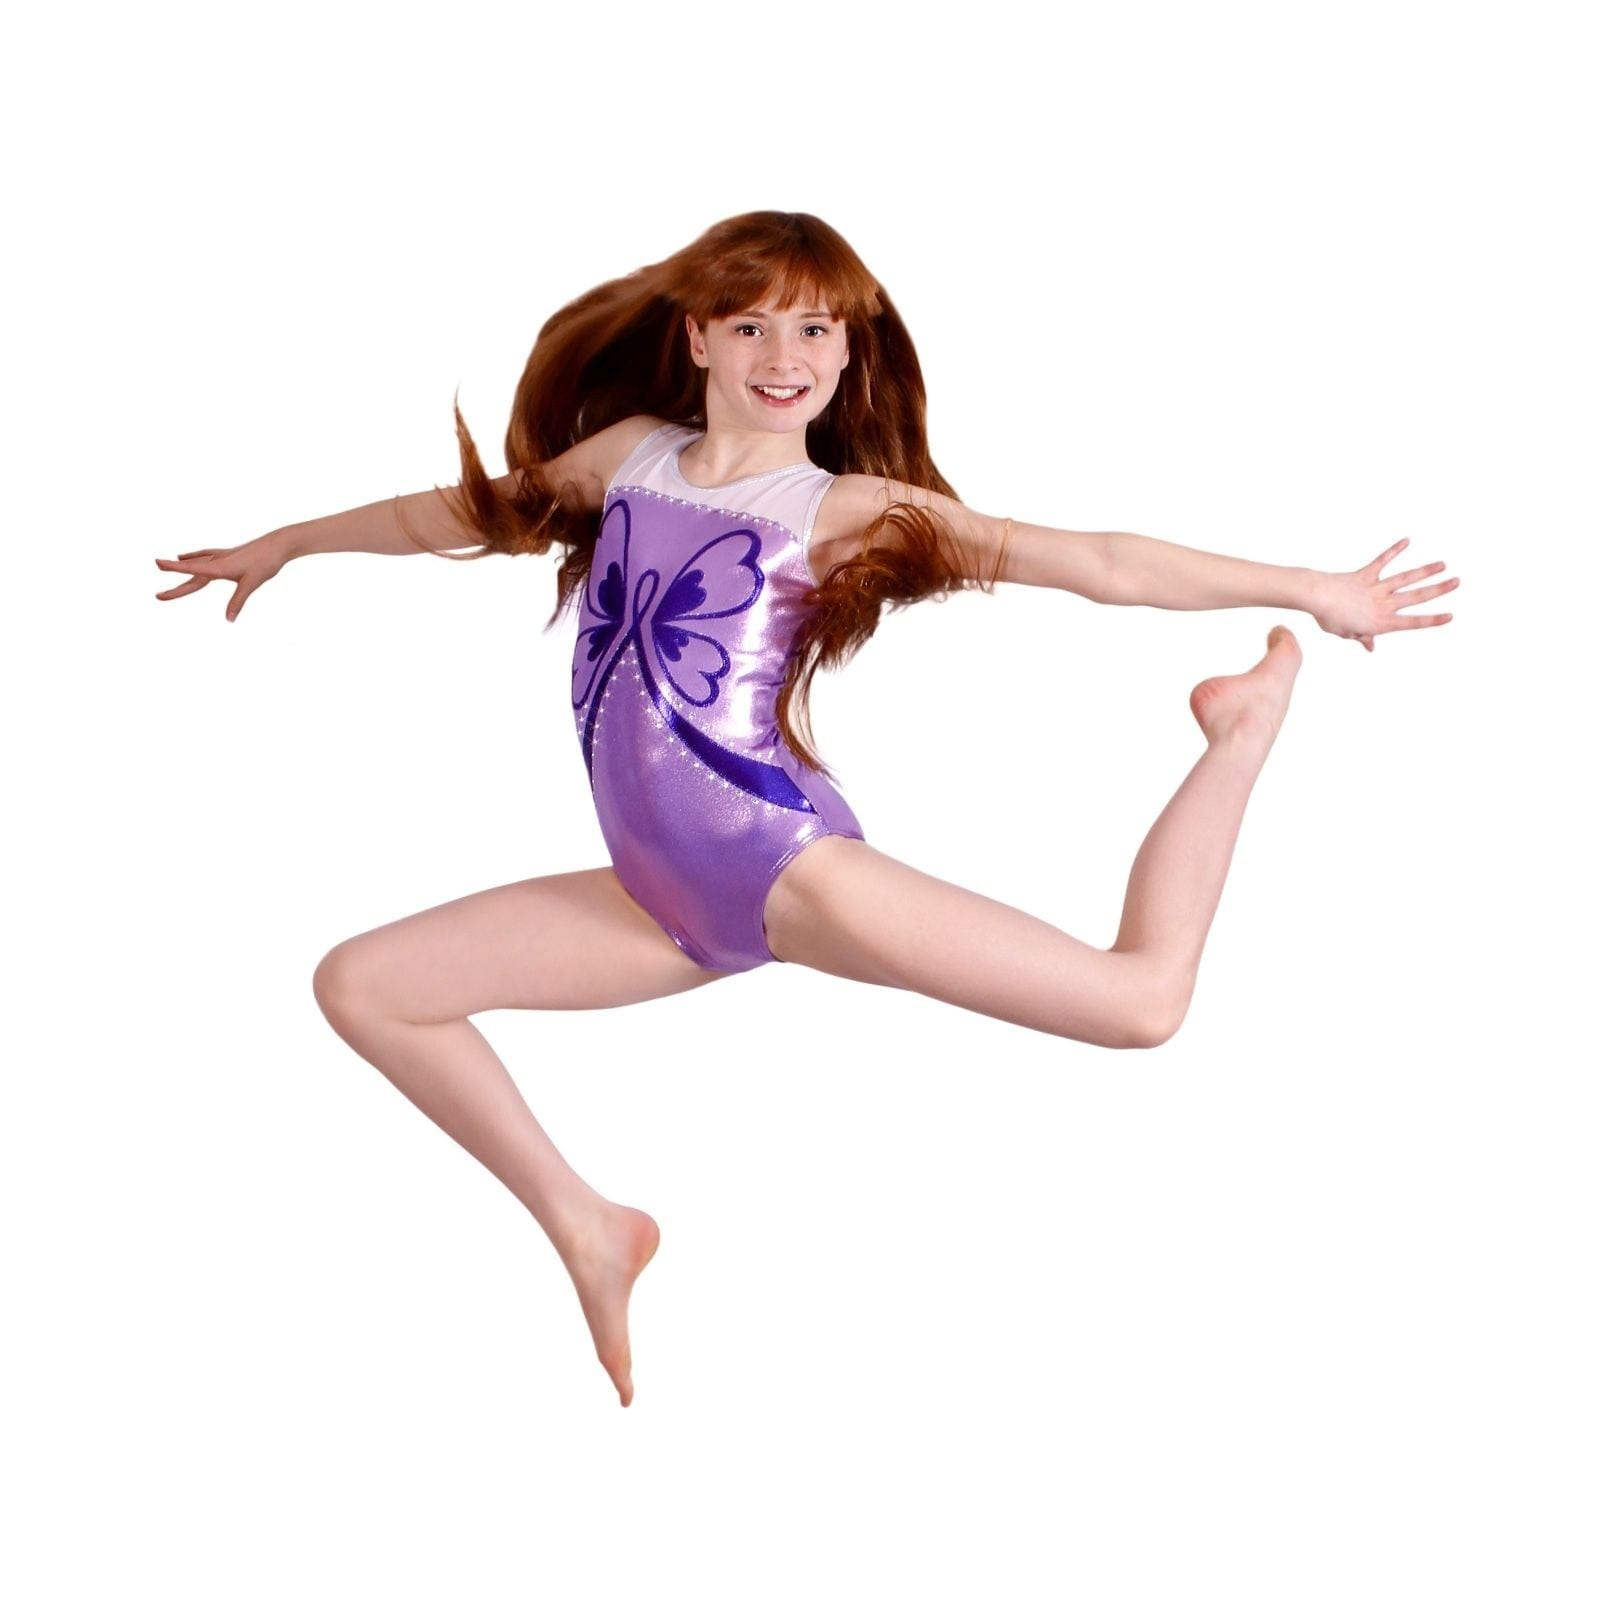 282a1f1ad607 Butterfly Hope Girls Gymnastics Leotard Pink or Purple